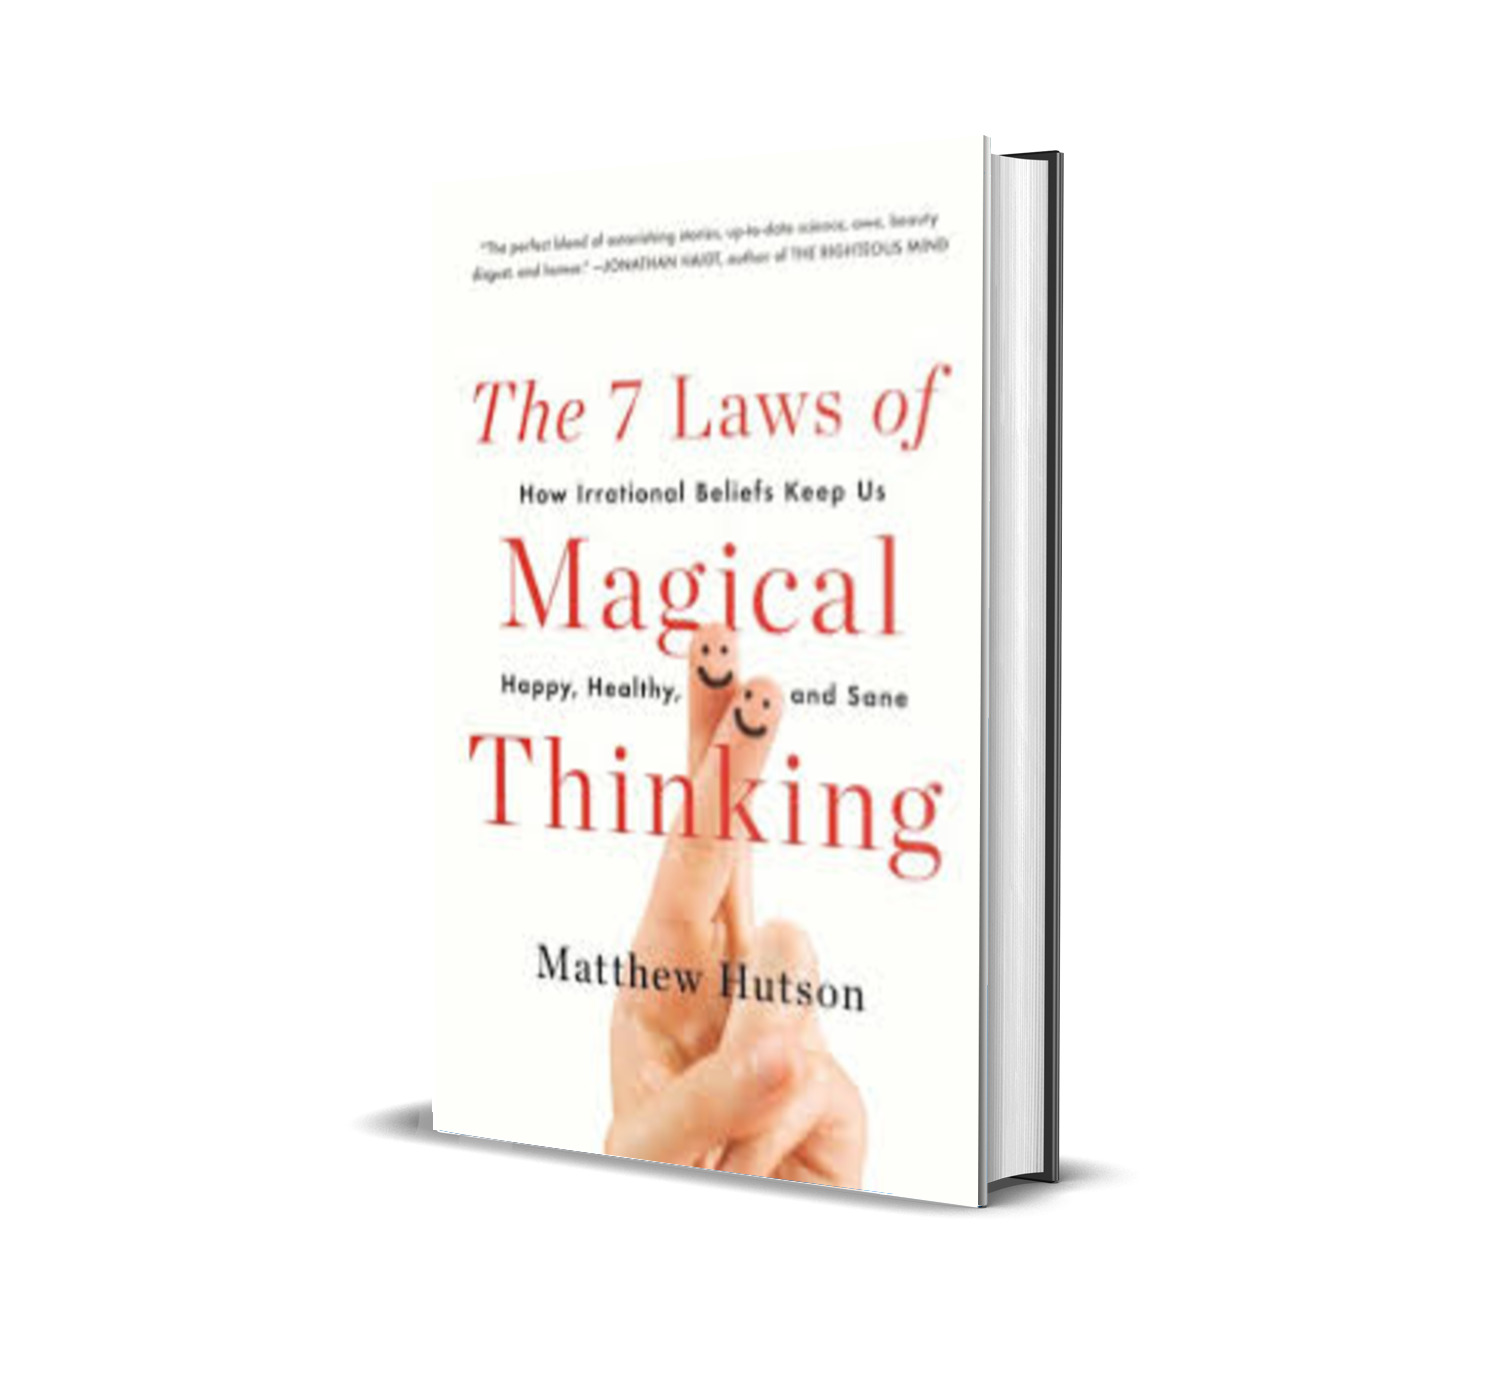 THE 7 LAWS OF MAGICAL THINKING - MATTHEW HUTSON